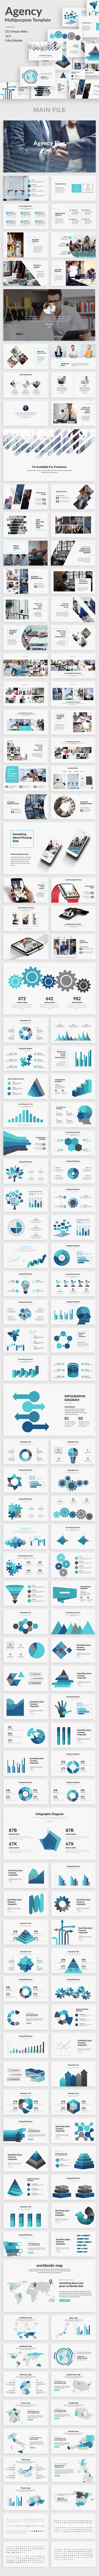 Agency Plus Multipurpose Powerpoint Template - Business PowerPoint Templates